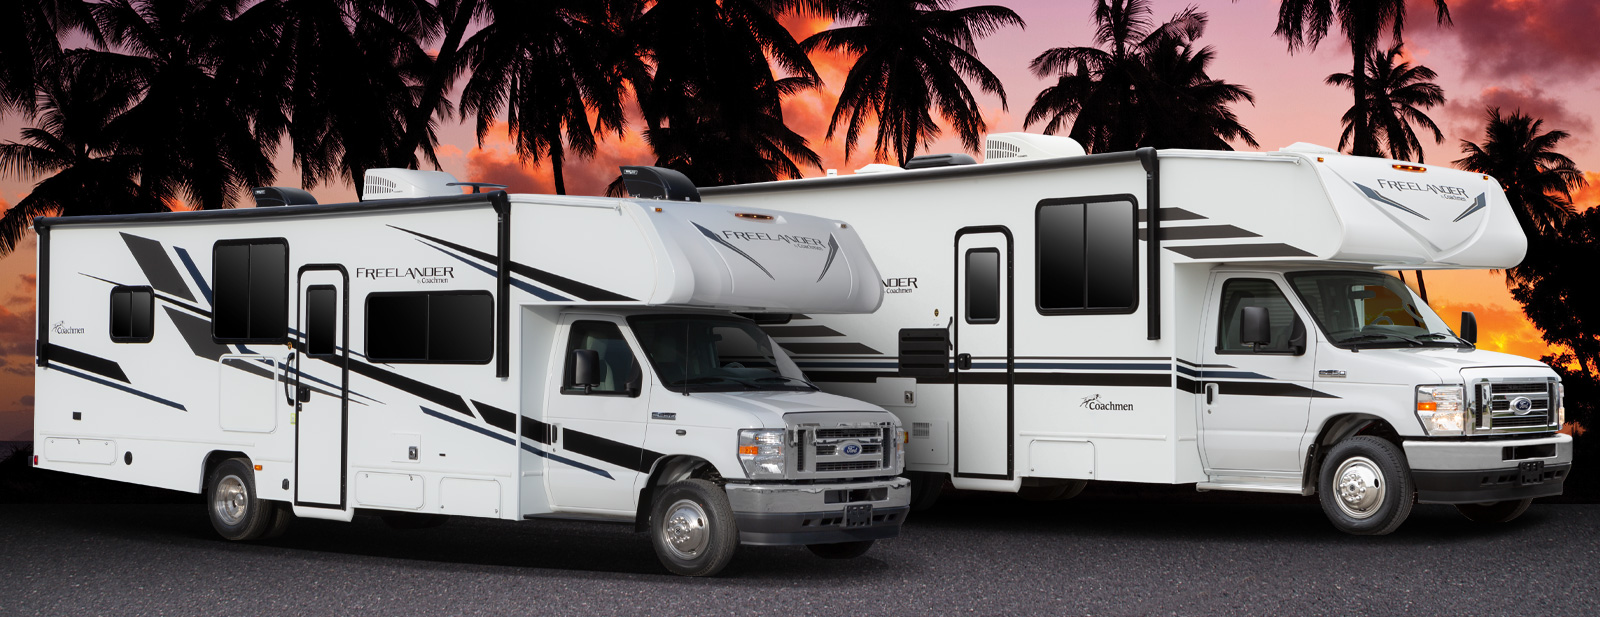 Class C Motorhomes by Coachmen RV